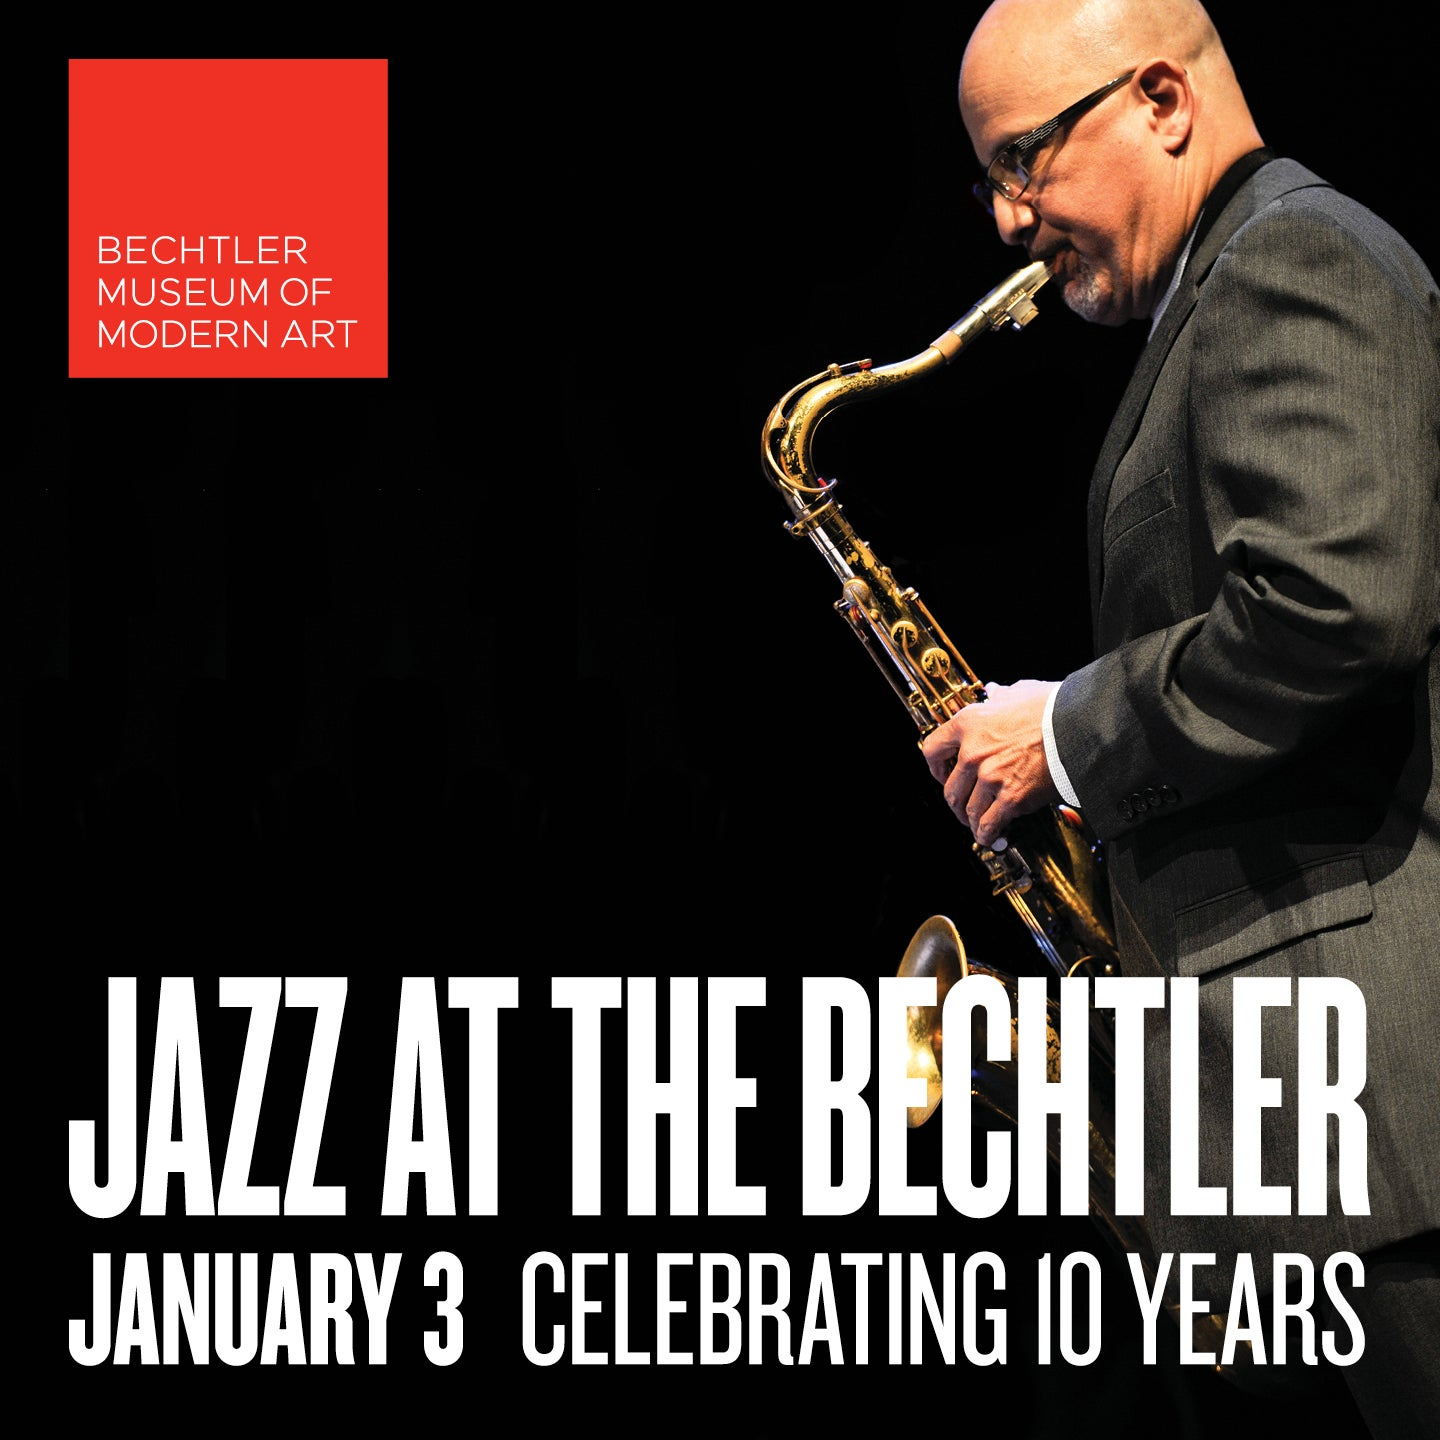 Celebrating 10 Years: A Jazz at the Bechtler Birthday Bash